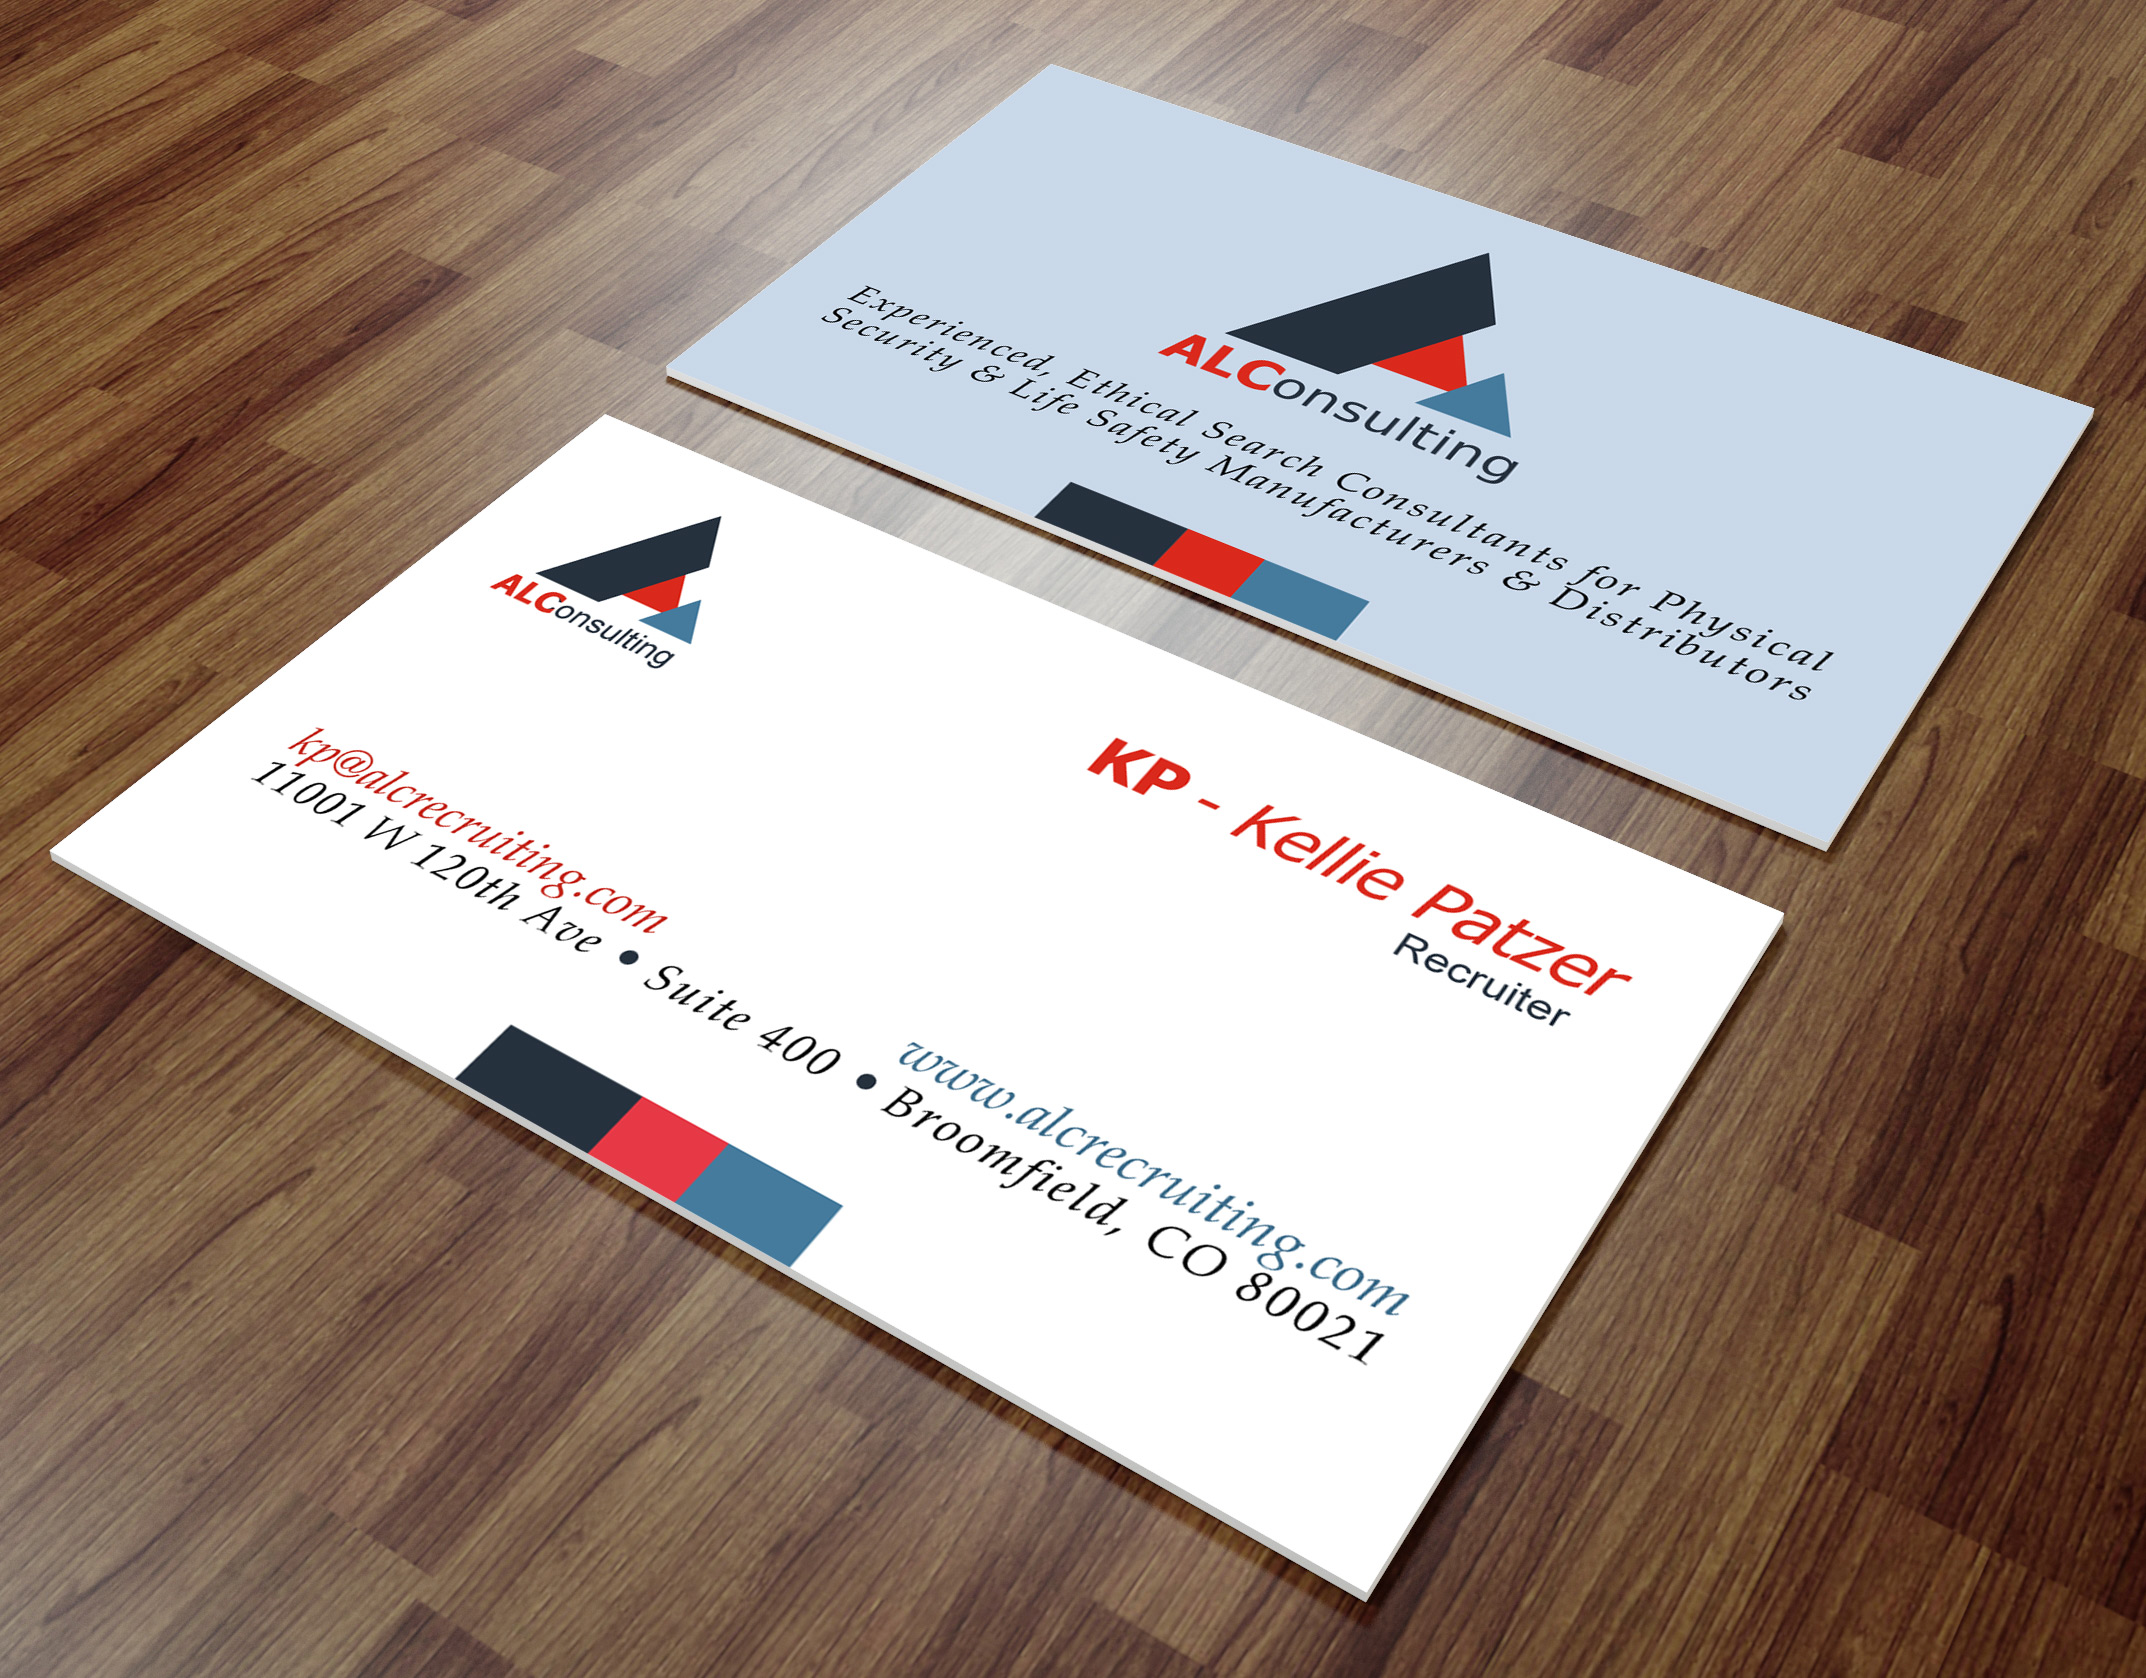 Alc consulting business cards emoforma we bring your stories to alc consulting business cards emoforma we bring your stories to life web design video production motion graphics 2d 3d animation logos business cards colourmoves